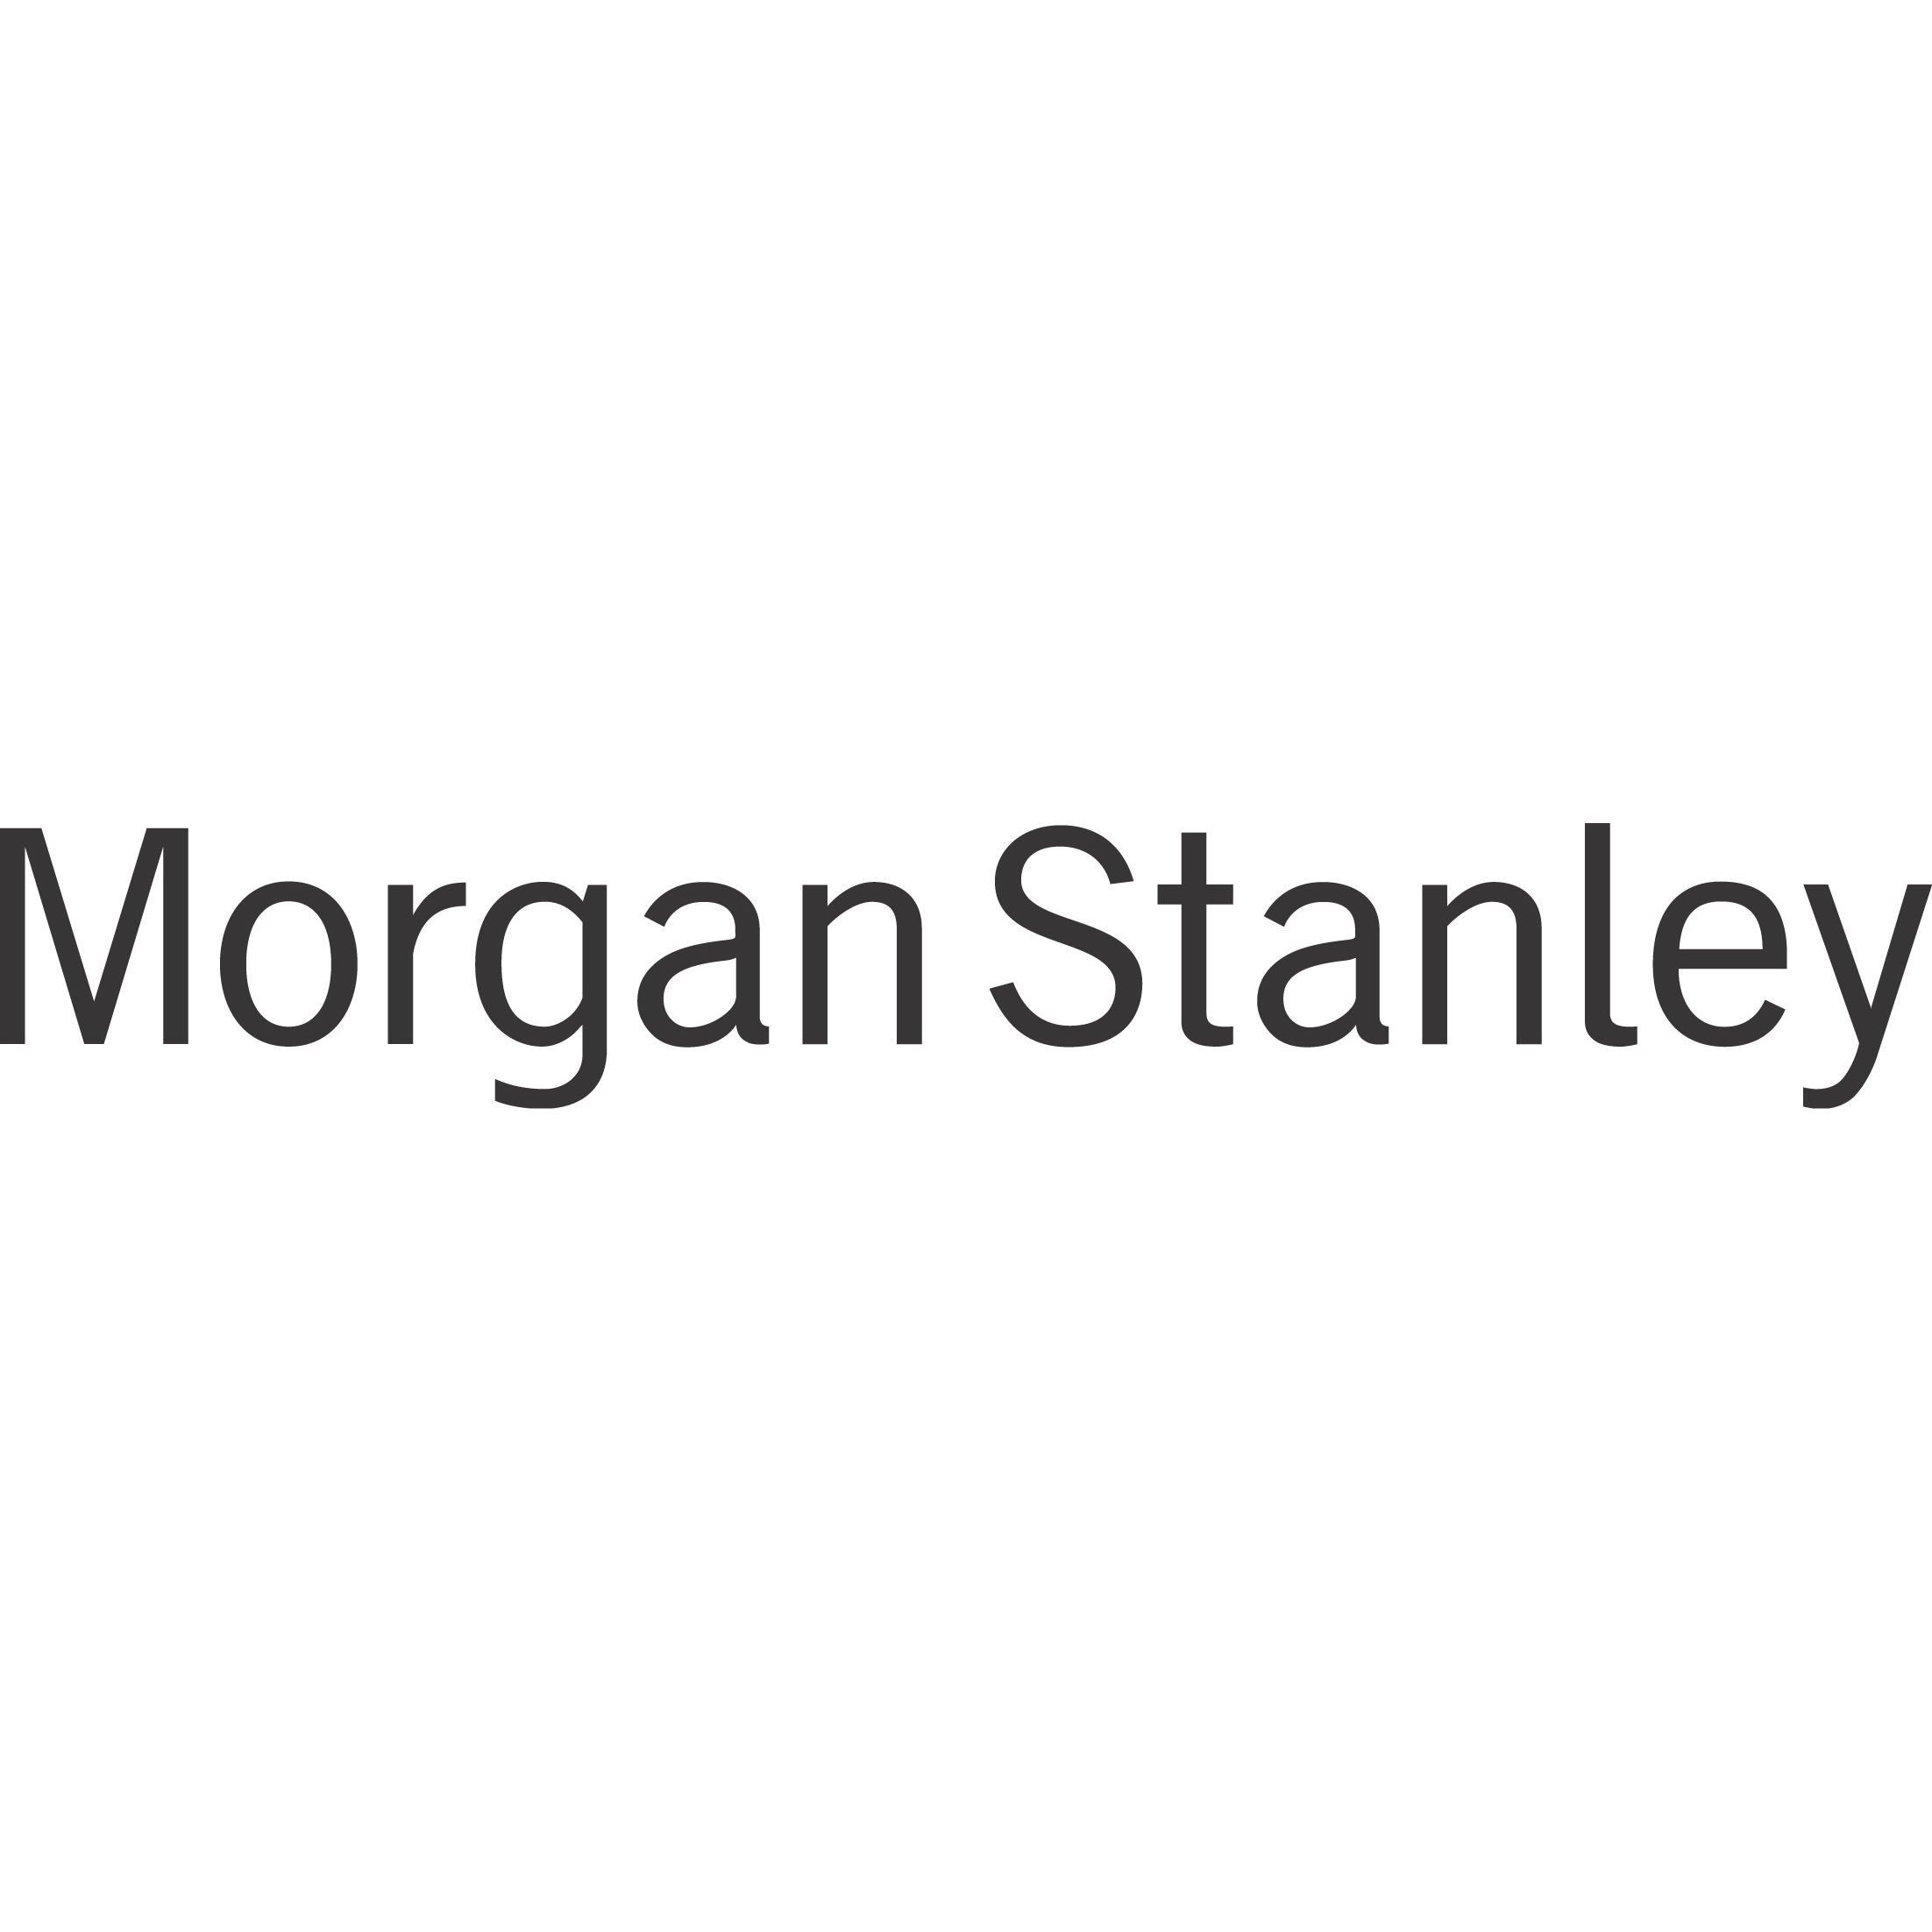 Dianna L. Smith - Morgan Stanley